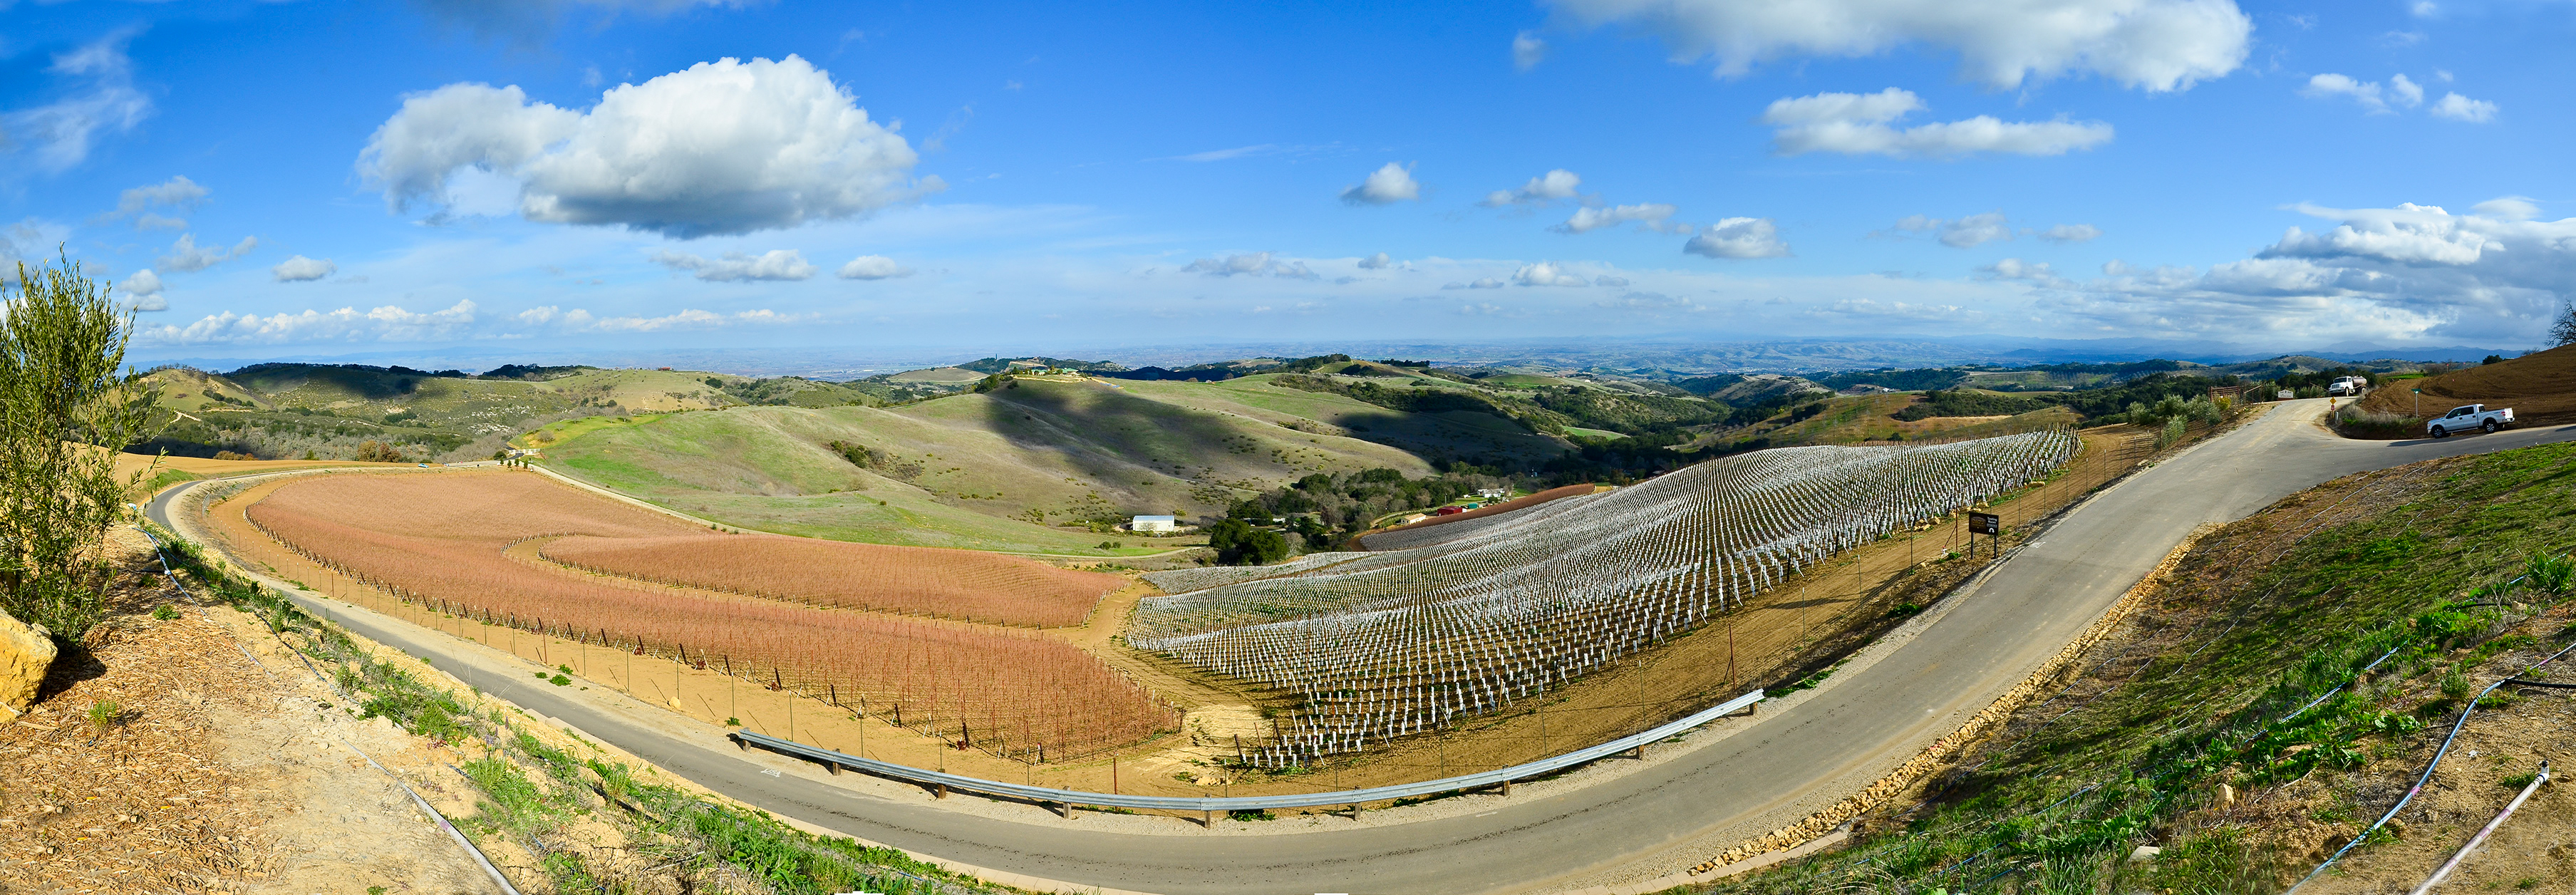 Paso Robles California >> File Daou Vineyards Paso Robles California Usa Feb 2012 Jpg